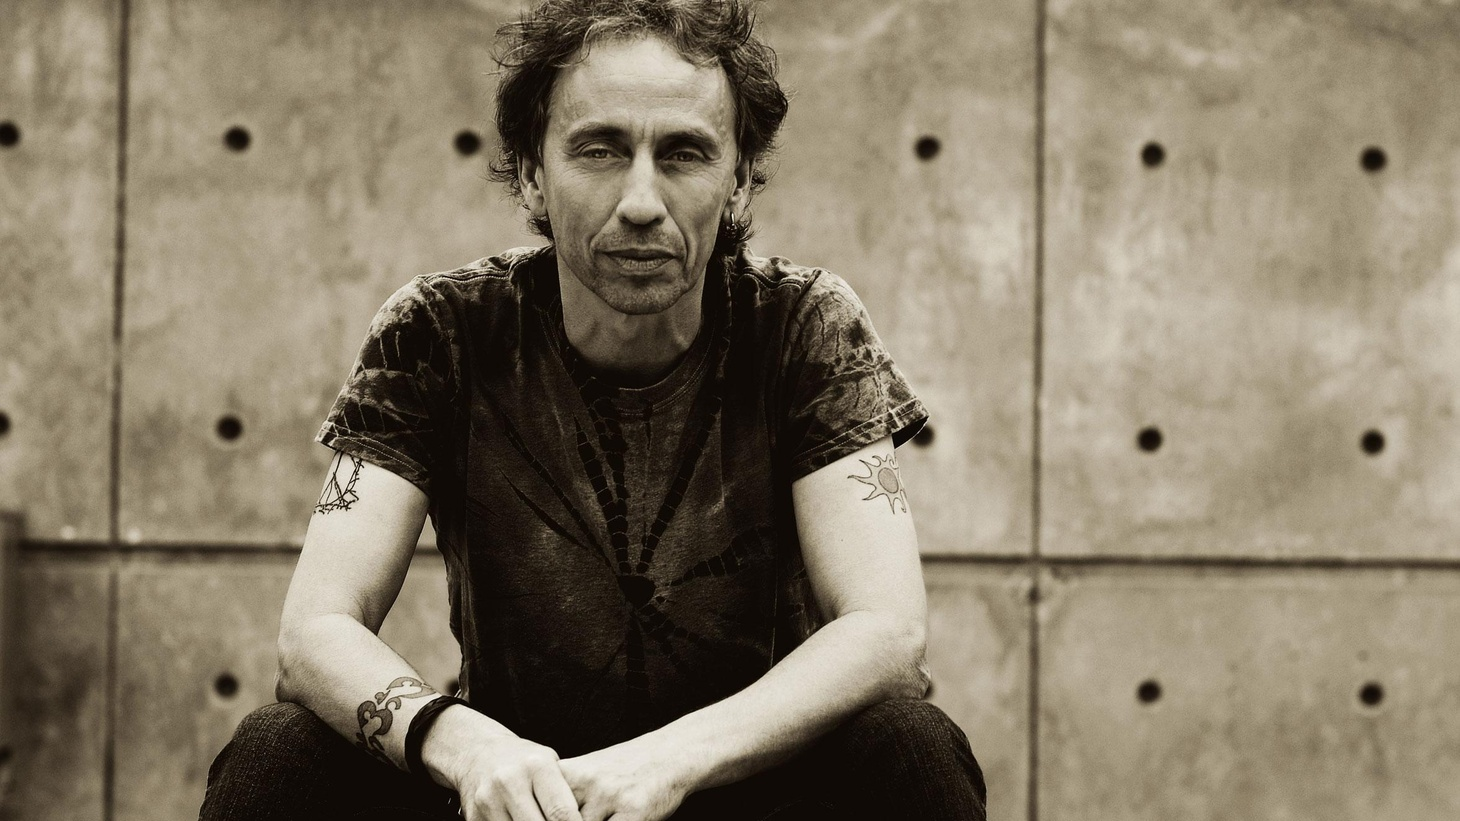 On this edition of Sounds Eclectic, host Nic Harcourt plays new, upcoming and recent releases from Athlete, Martha Wainwright, and the latest from Moby. Plus a live in-studio performance from Kathleen Edwards, all this and much more on Sounds Eclectic.